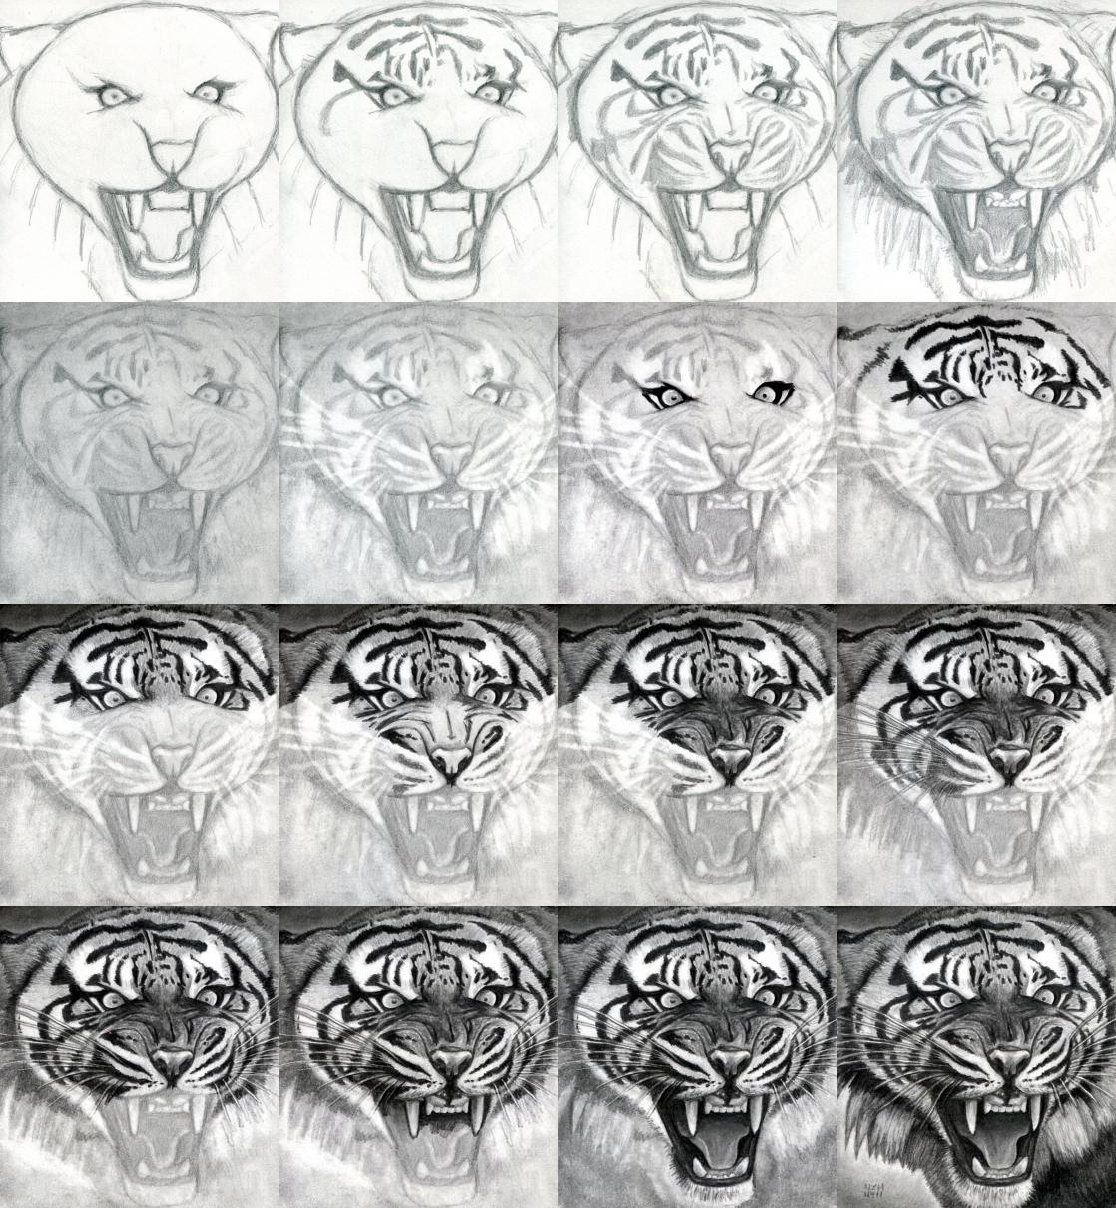 How To Draw A Realistic Tiger Step By Step